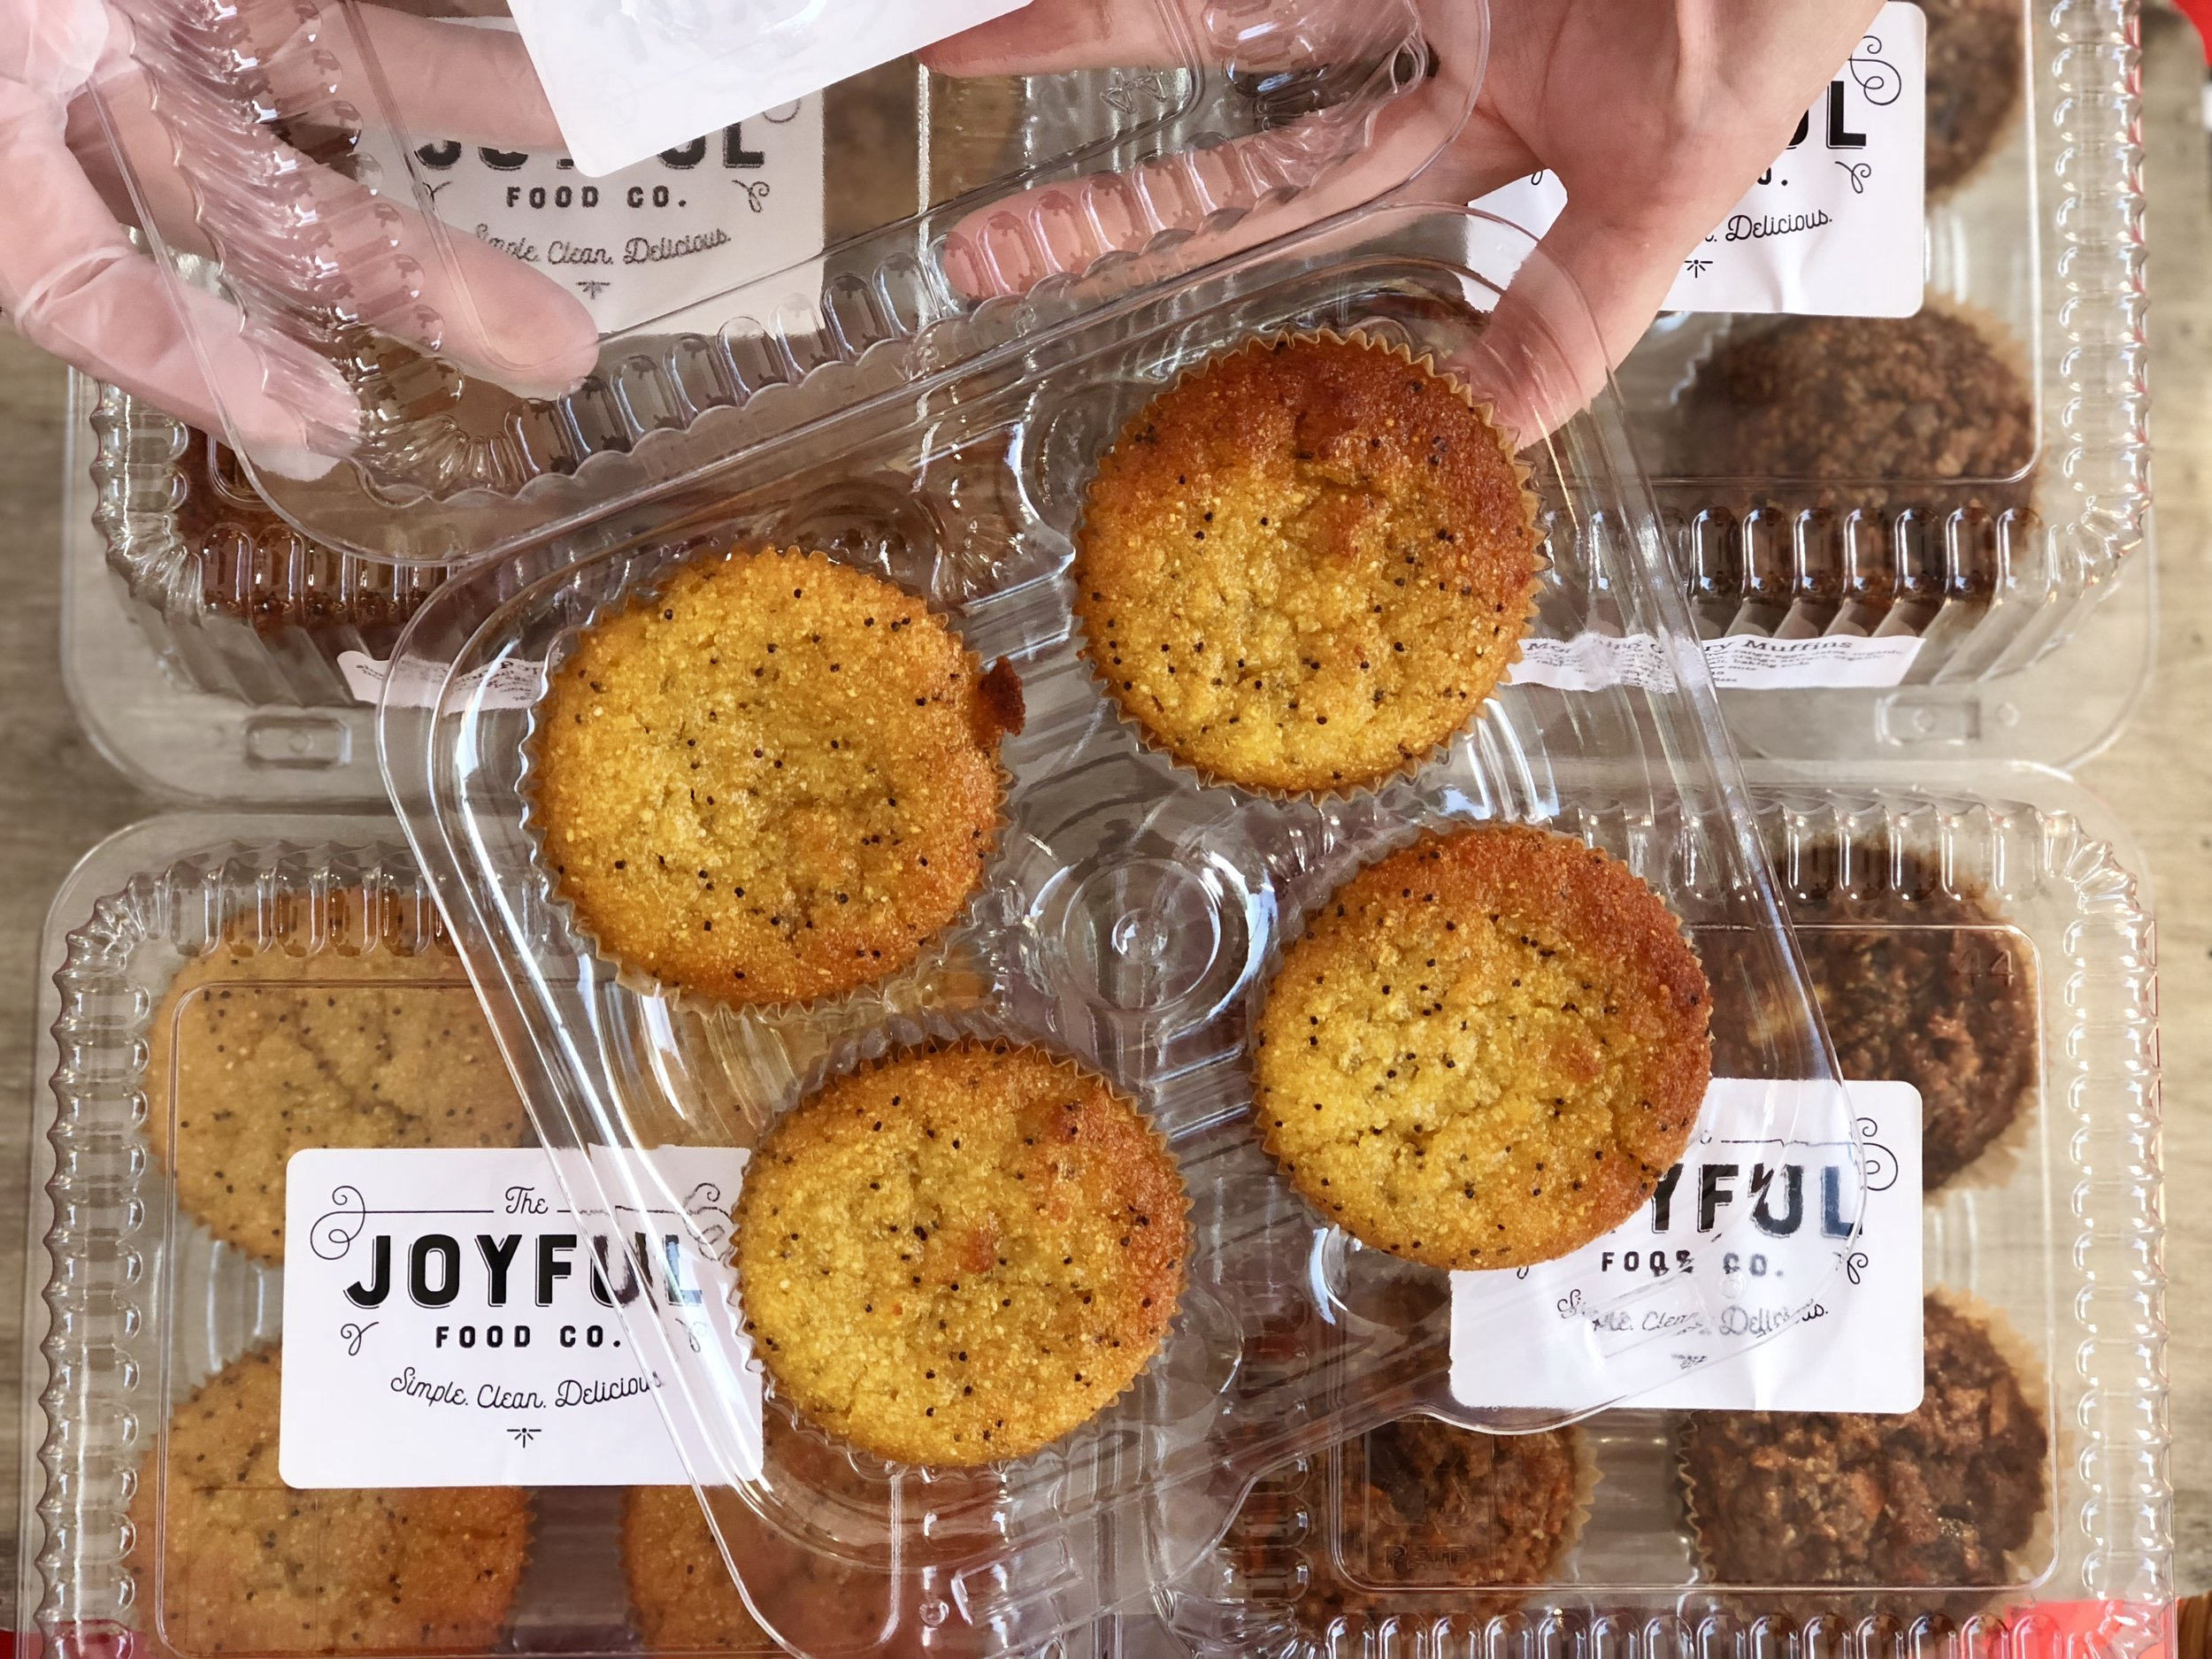 The Joyful Food Co.